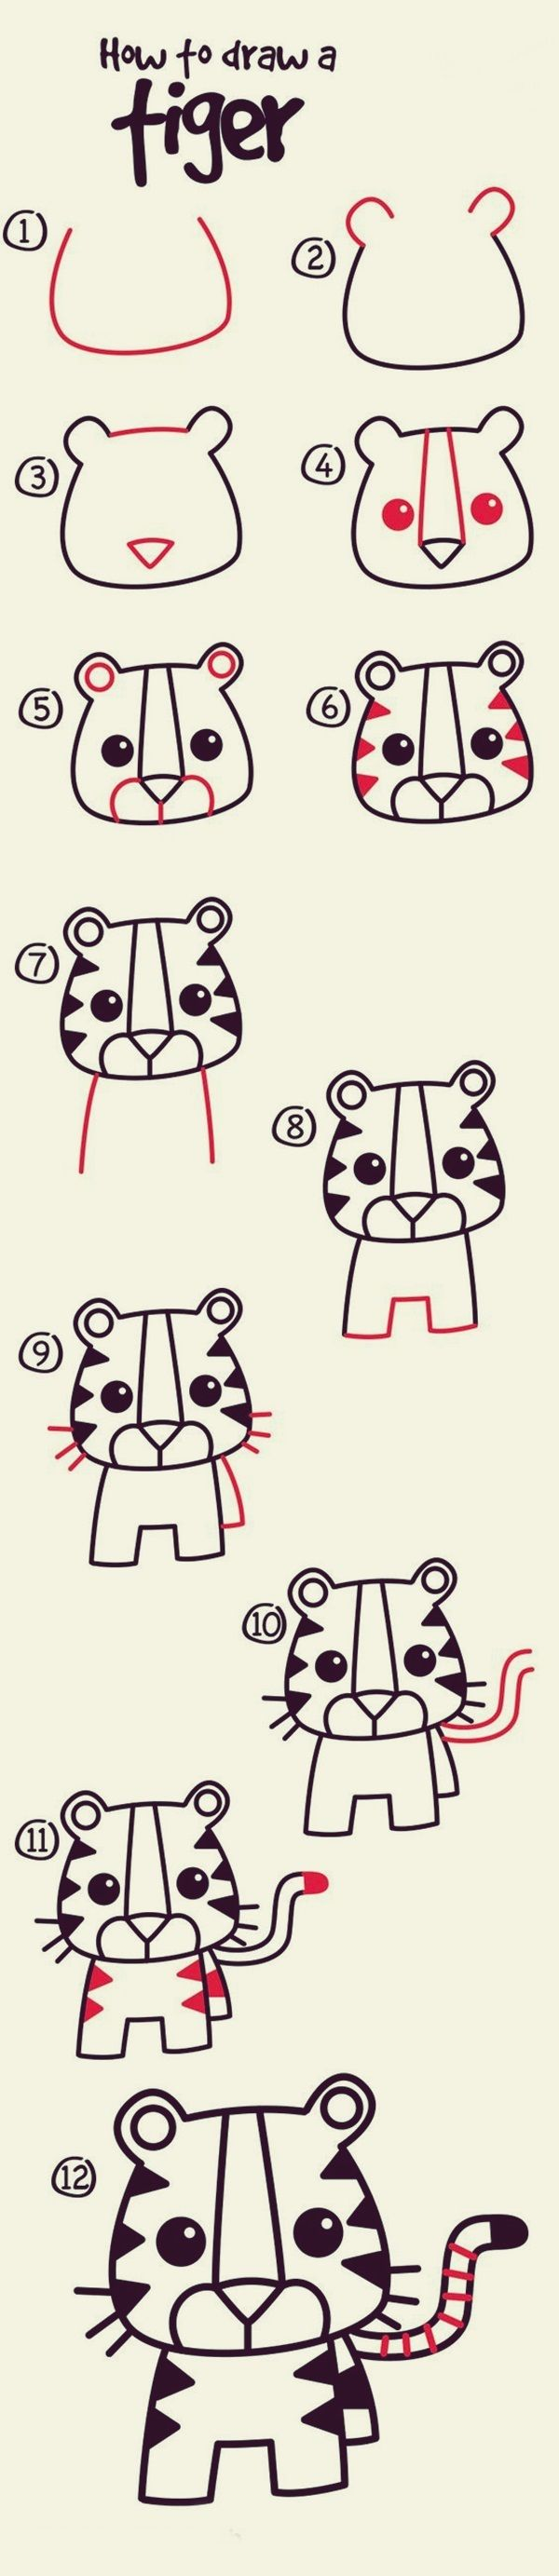 best how draw images on pinterest how to draw draw animals